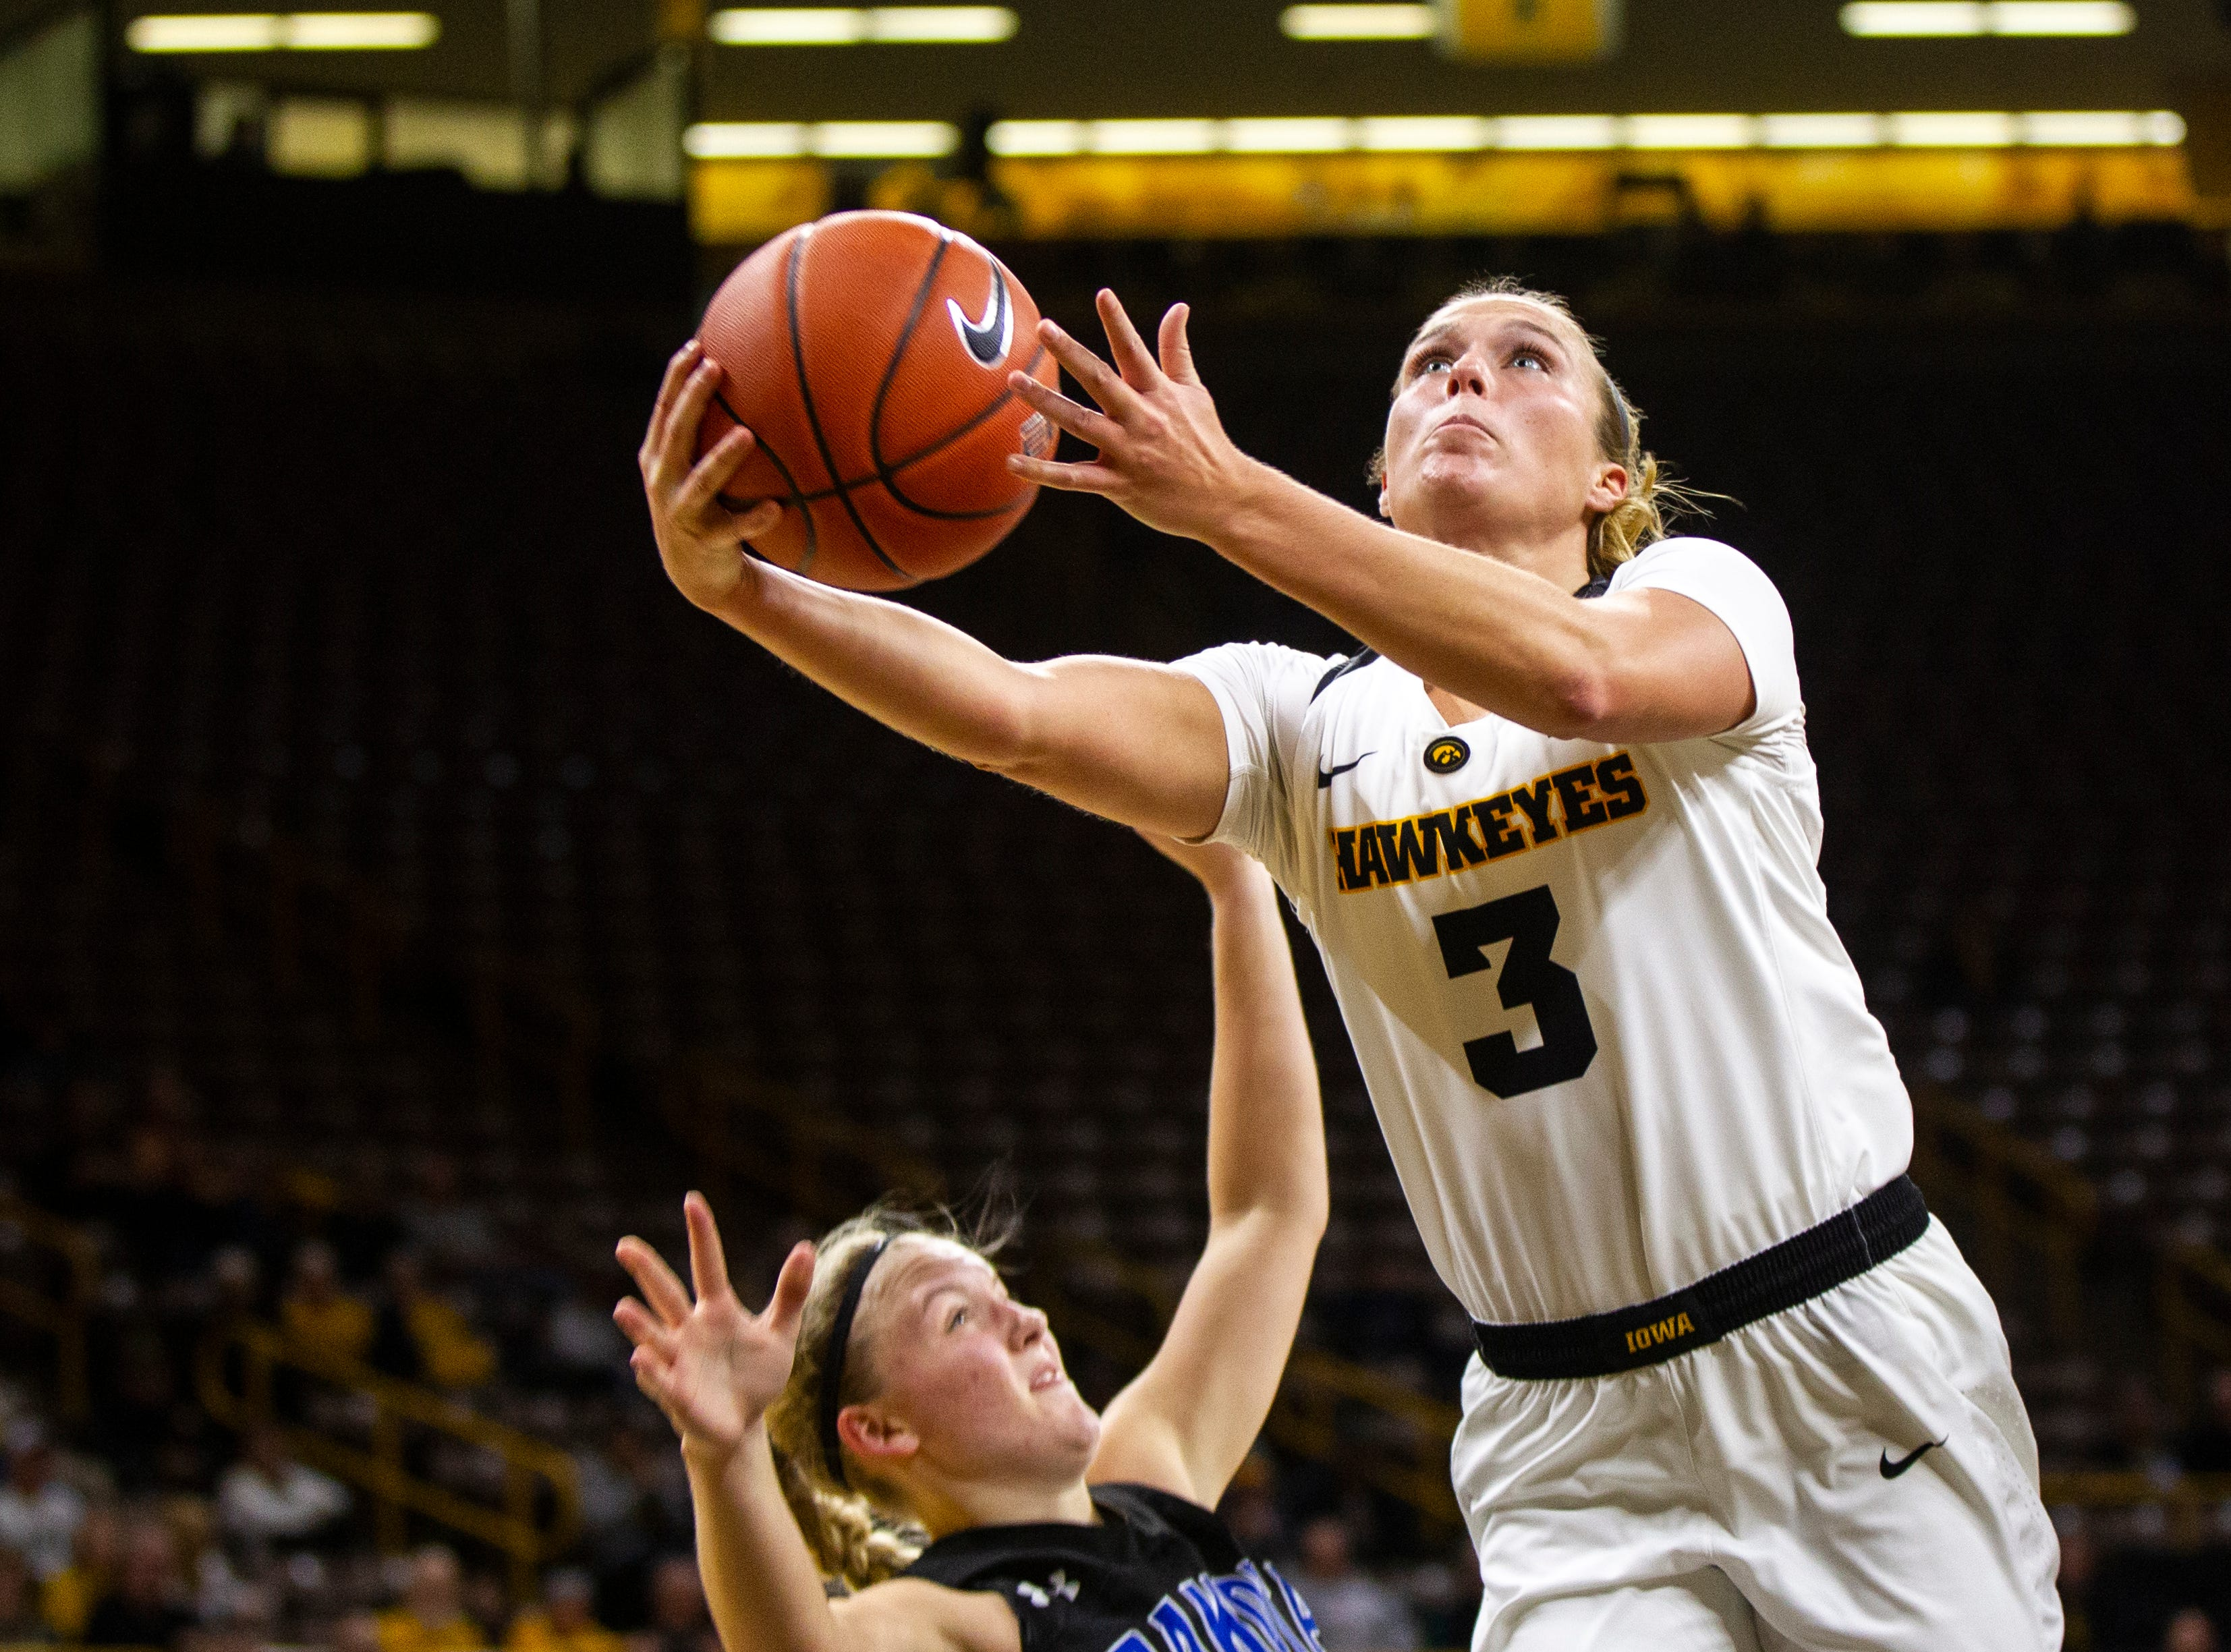 Iowa guard Makenzie Meyer (3) attempts a layup during a women's basketball exhibition basketball game on Tuesday, Nov. 6, 2018, at Carver-Hawkeye Arena in Iowa City.